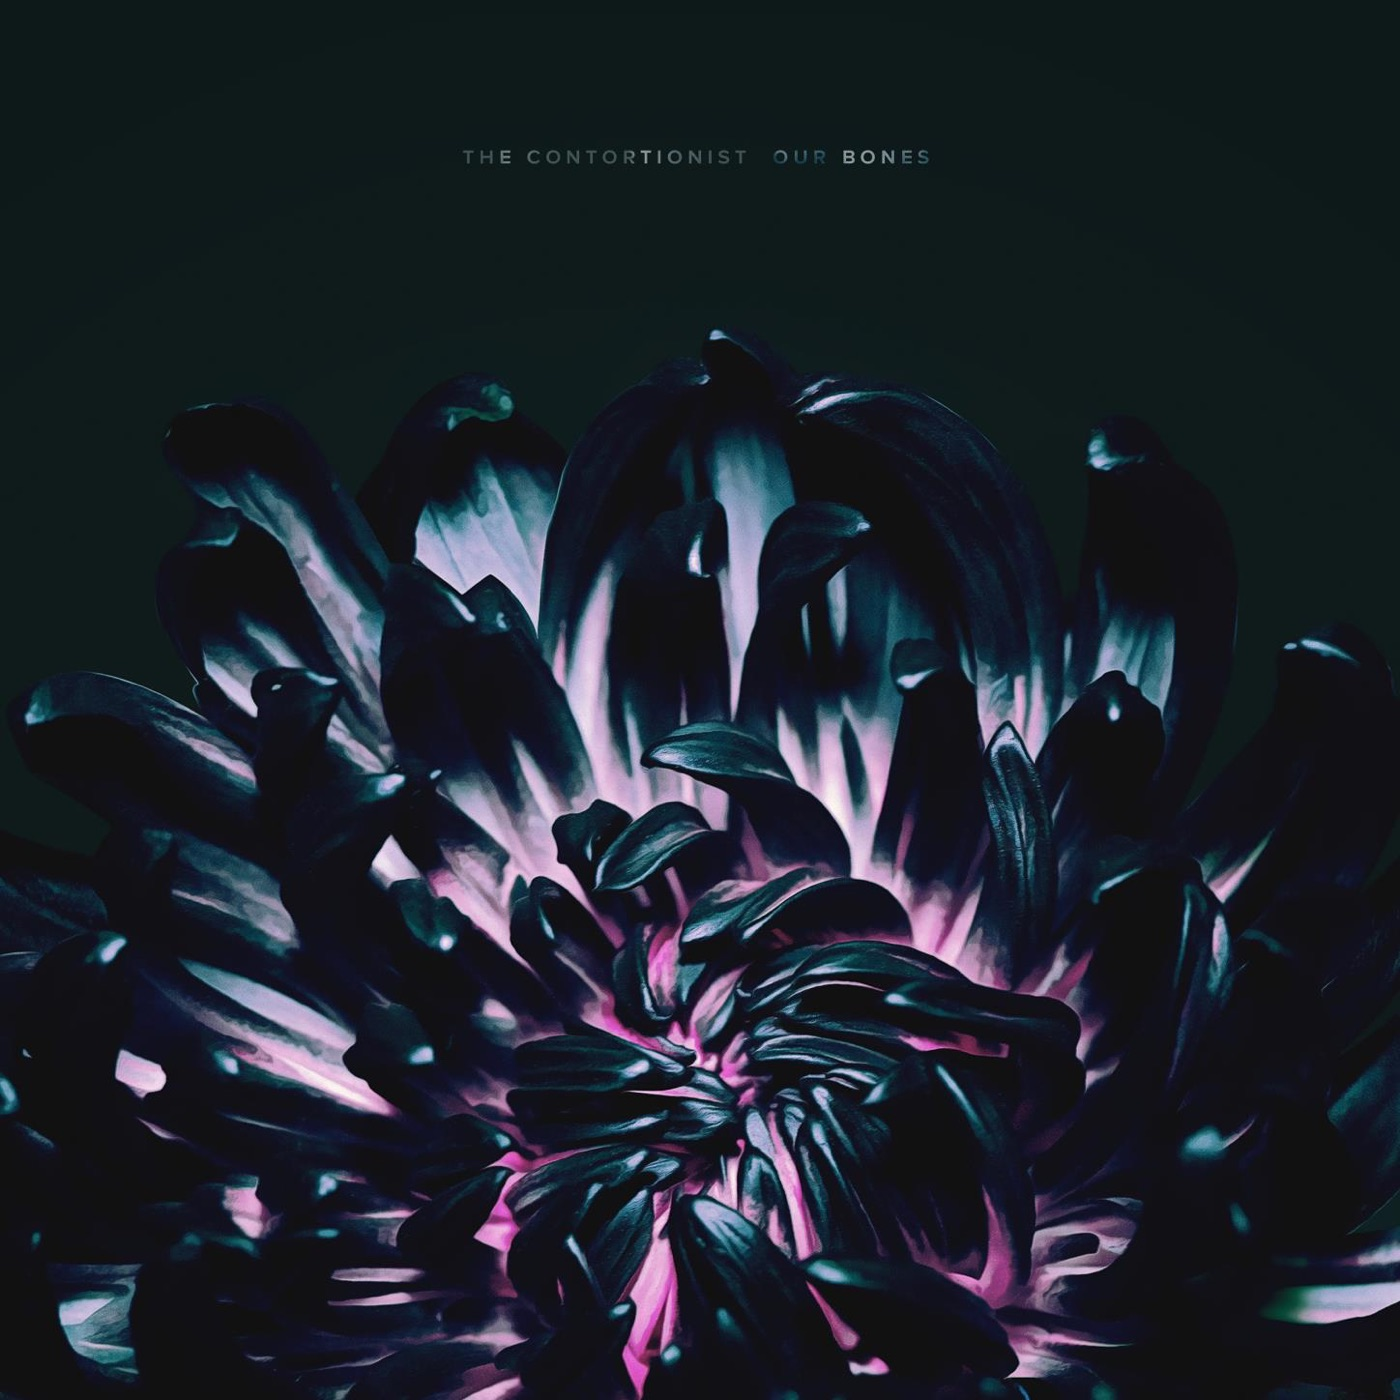 Félgőzzel - The Contortionist – Our Bones (EP, 2019)